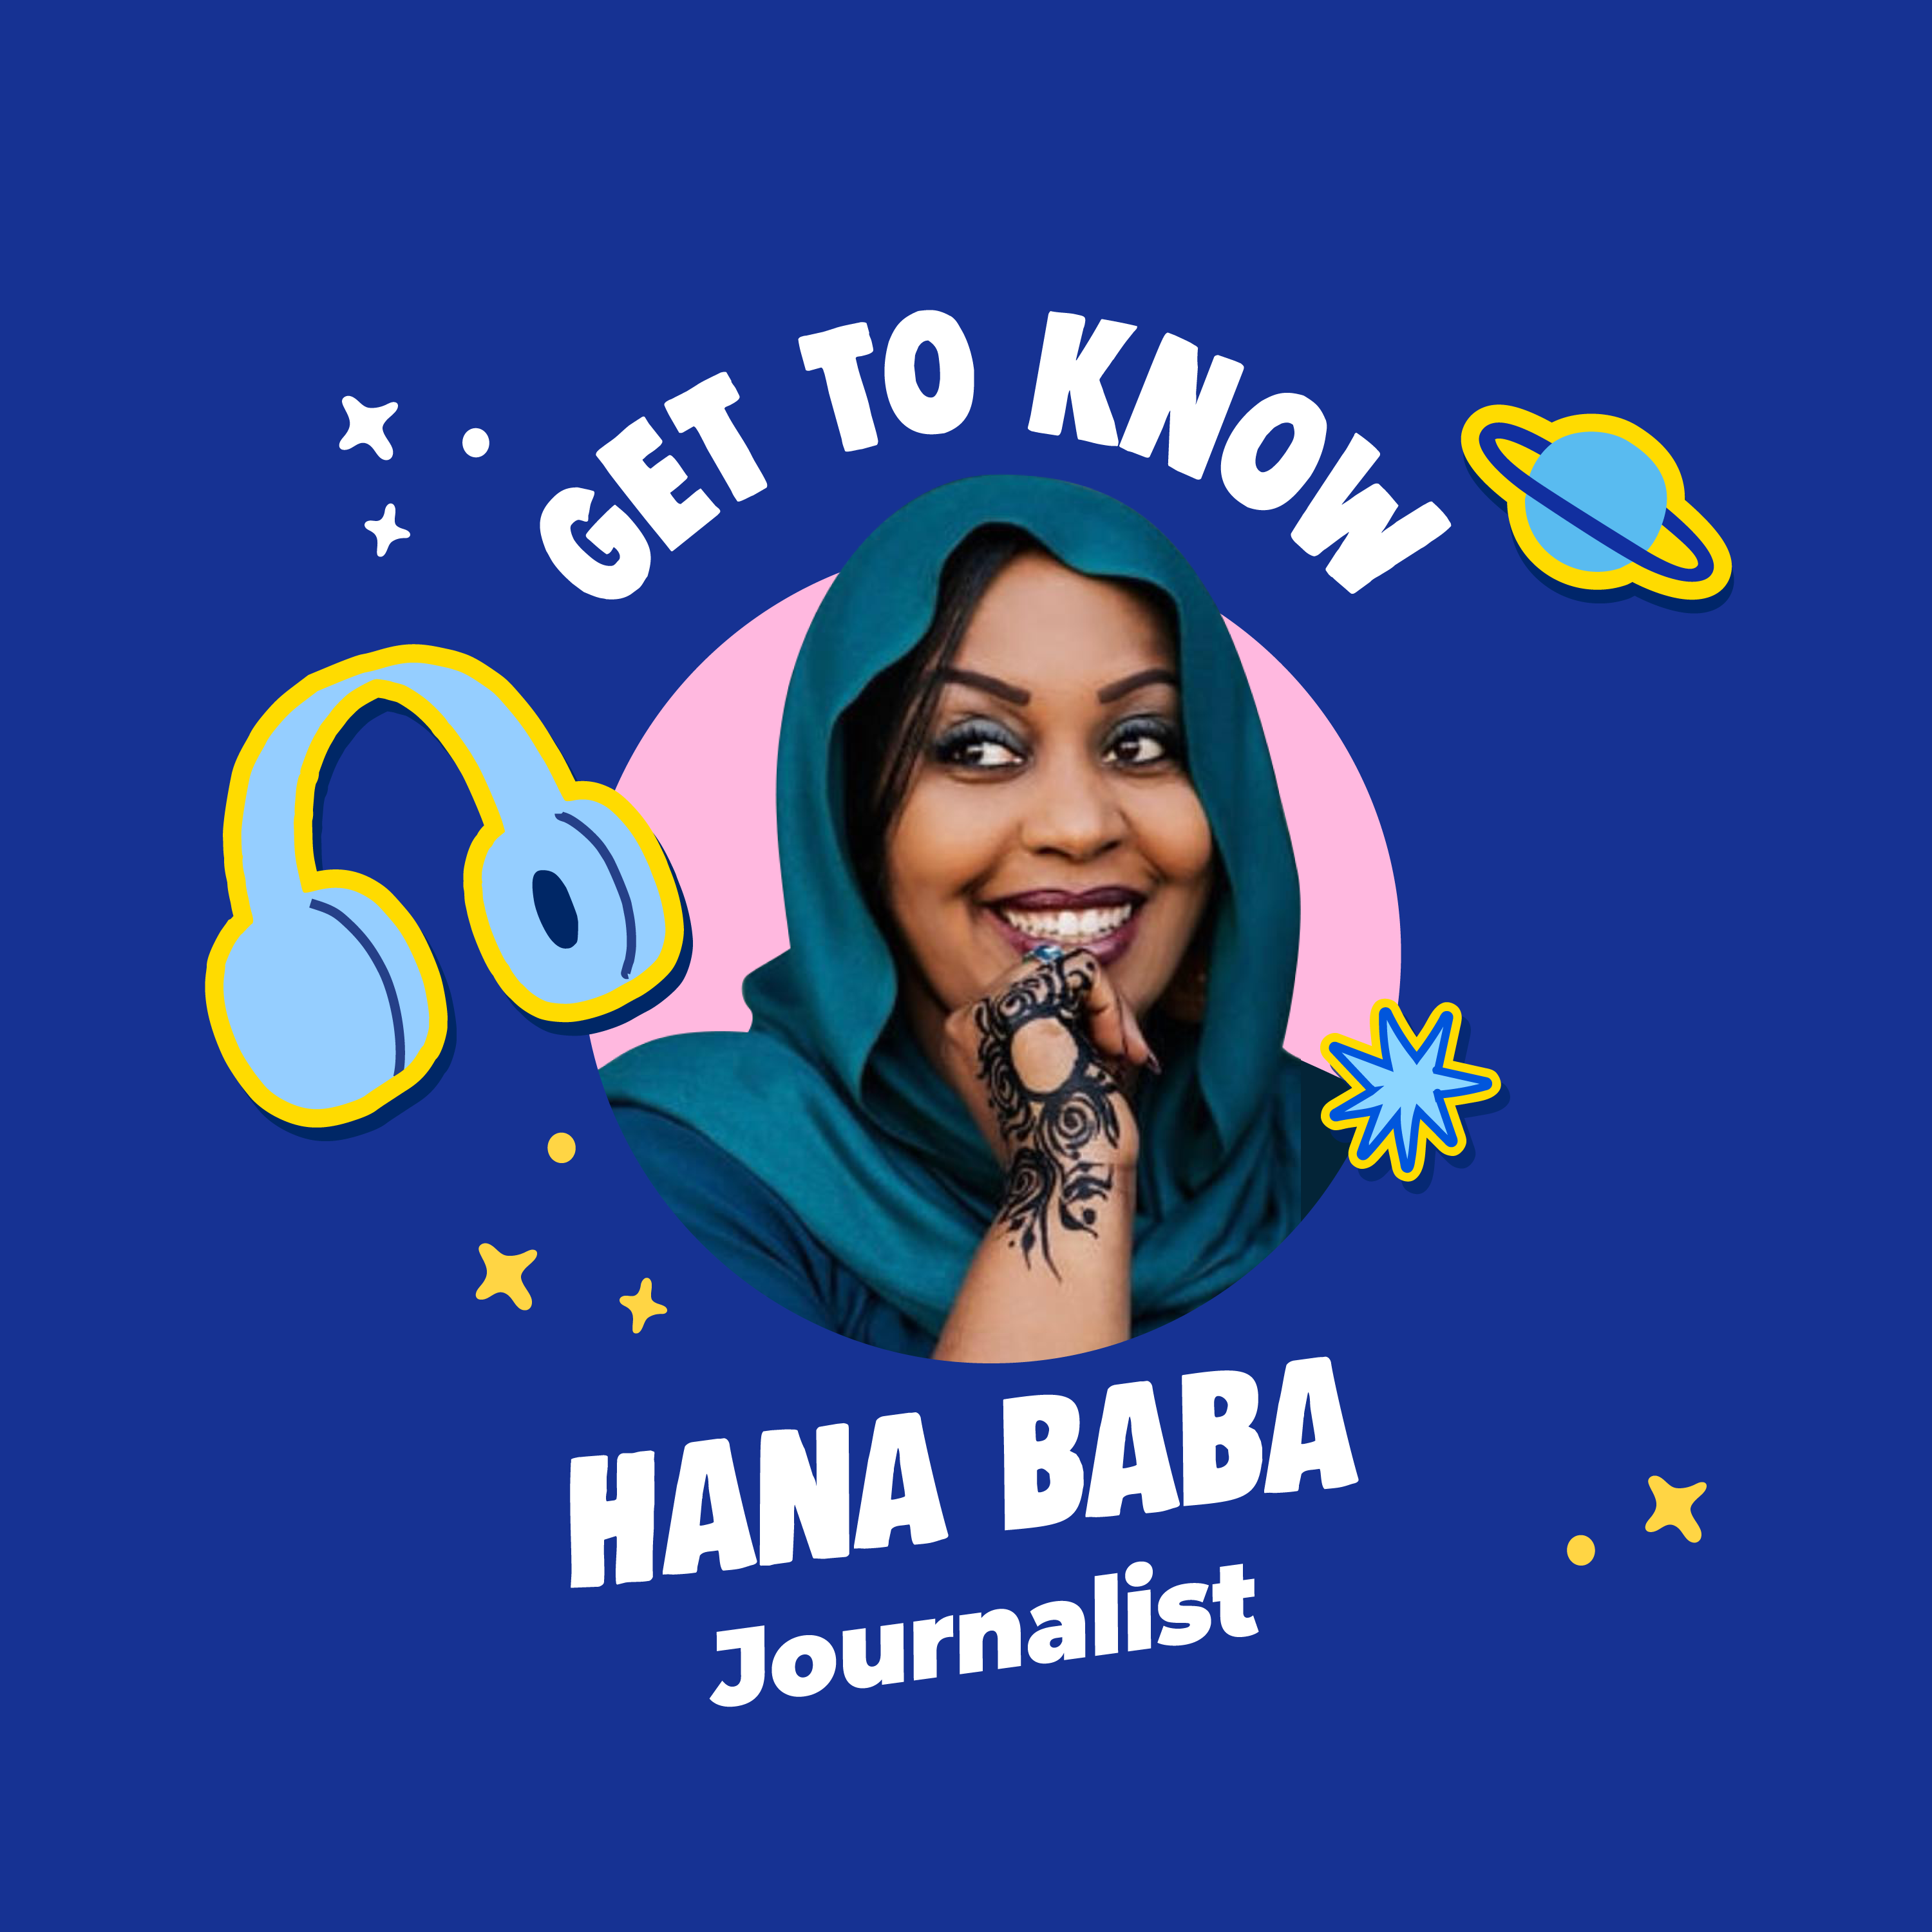 Get To Know Hana Baba